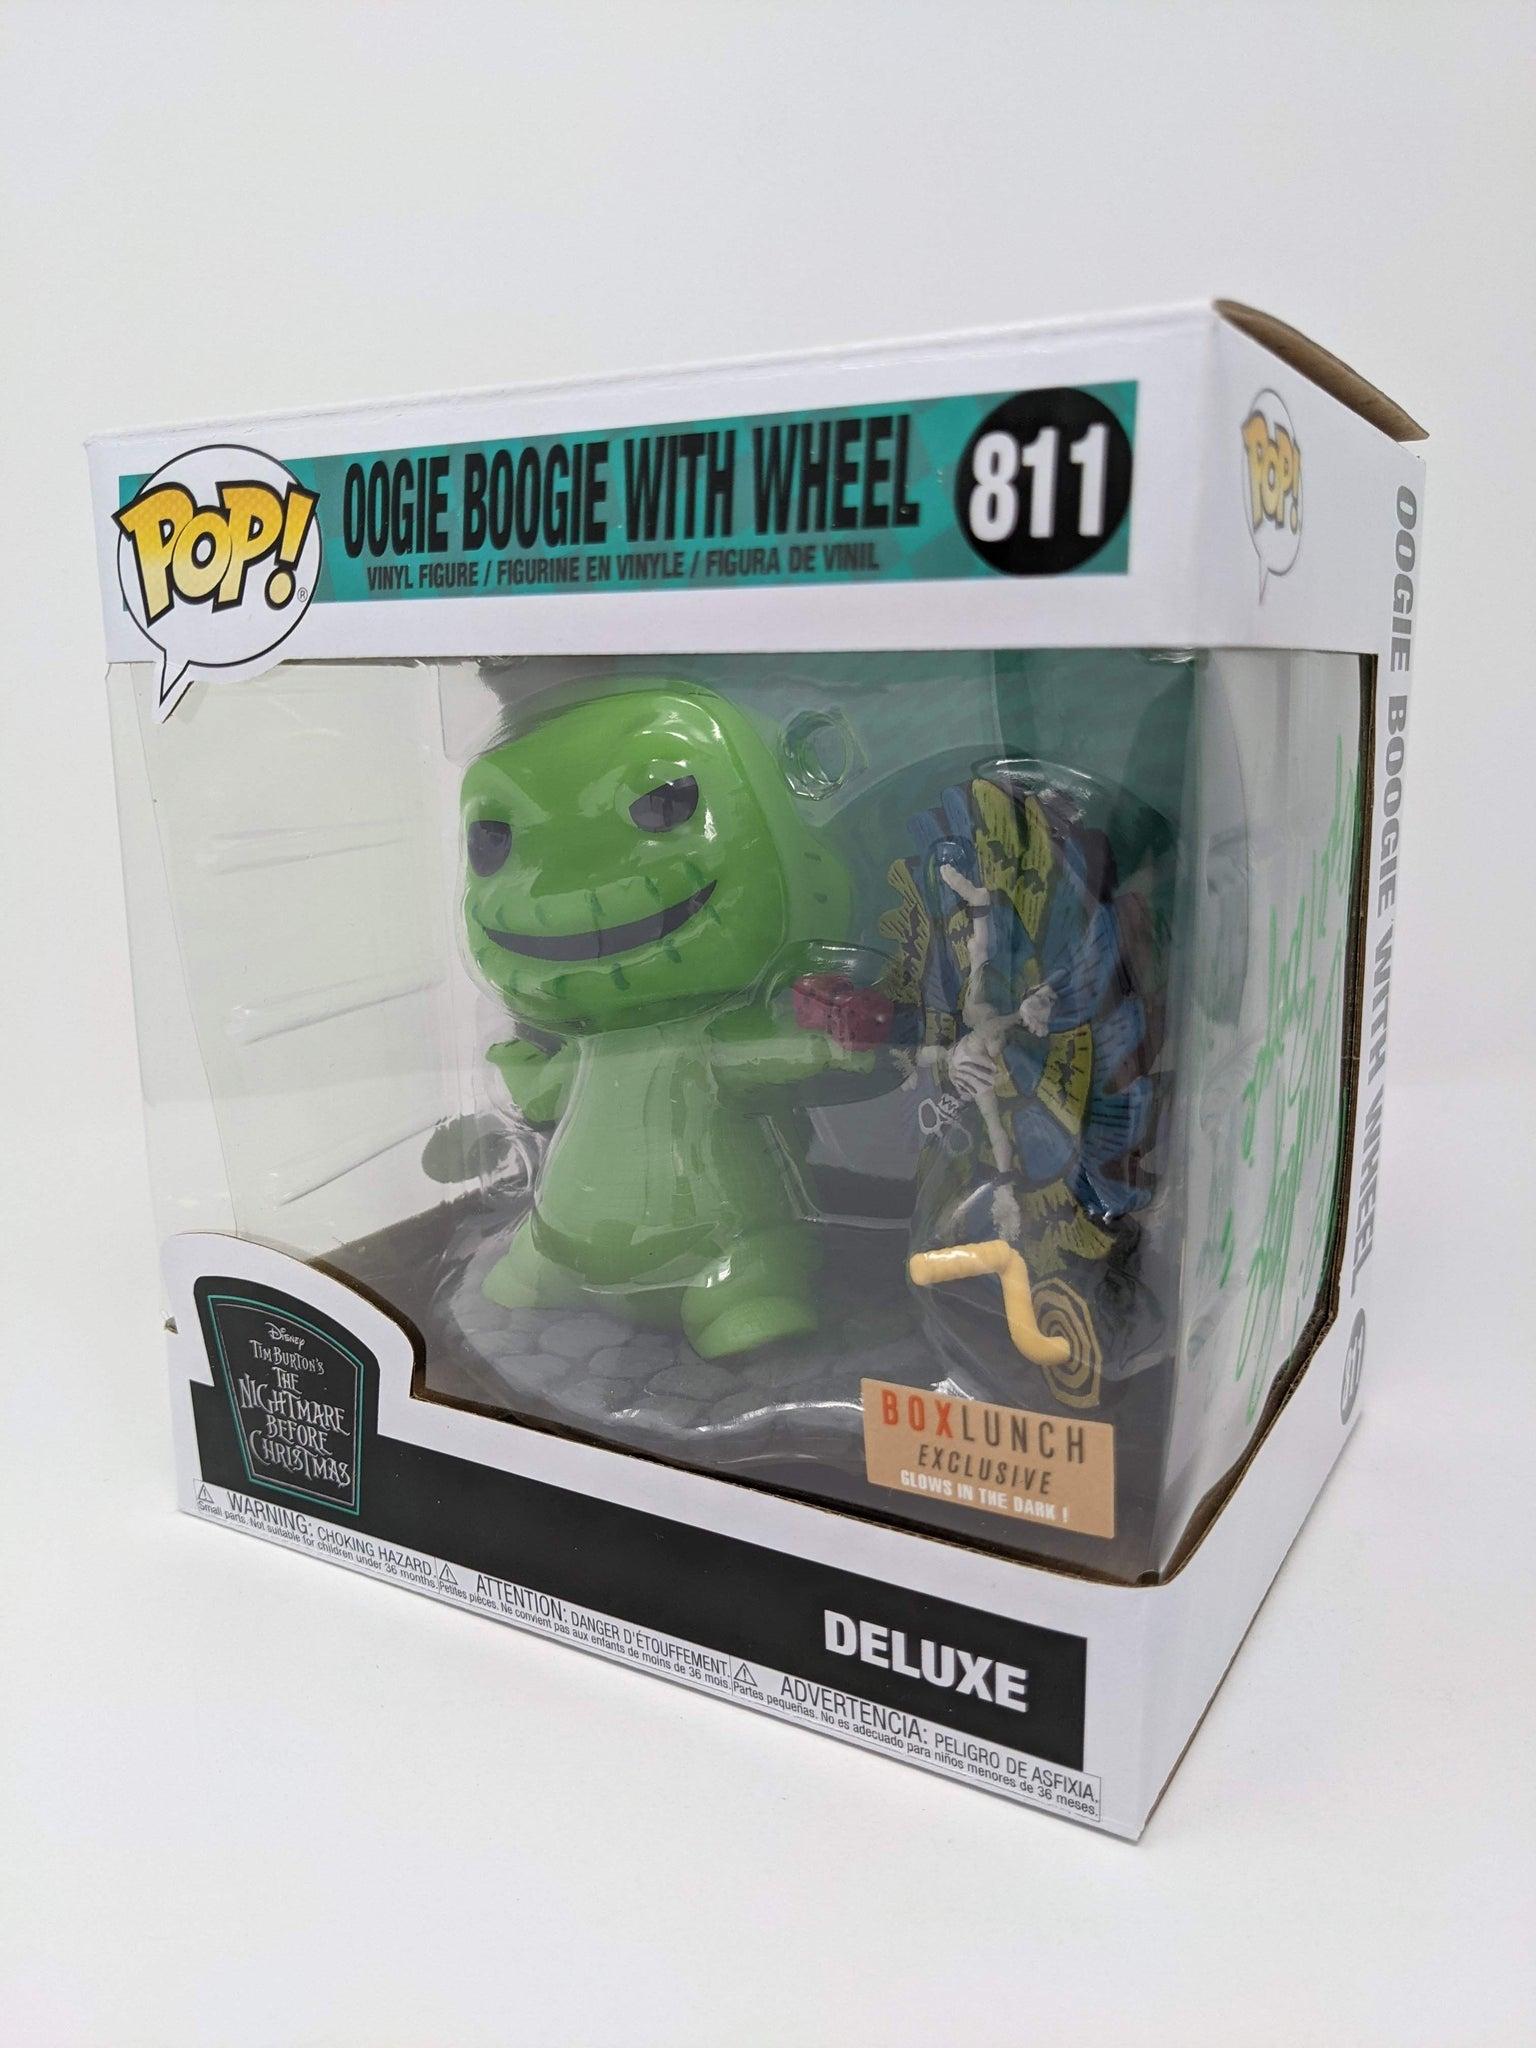 Ken Page Oogie Boogie with Wheel #811 Exclusive Signed JSA Deluxe Funko Pop Auto GalaxyCon